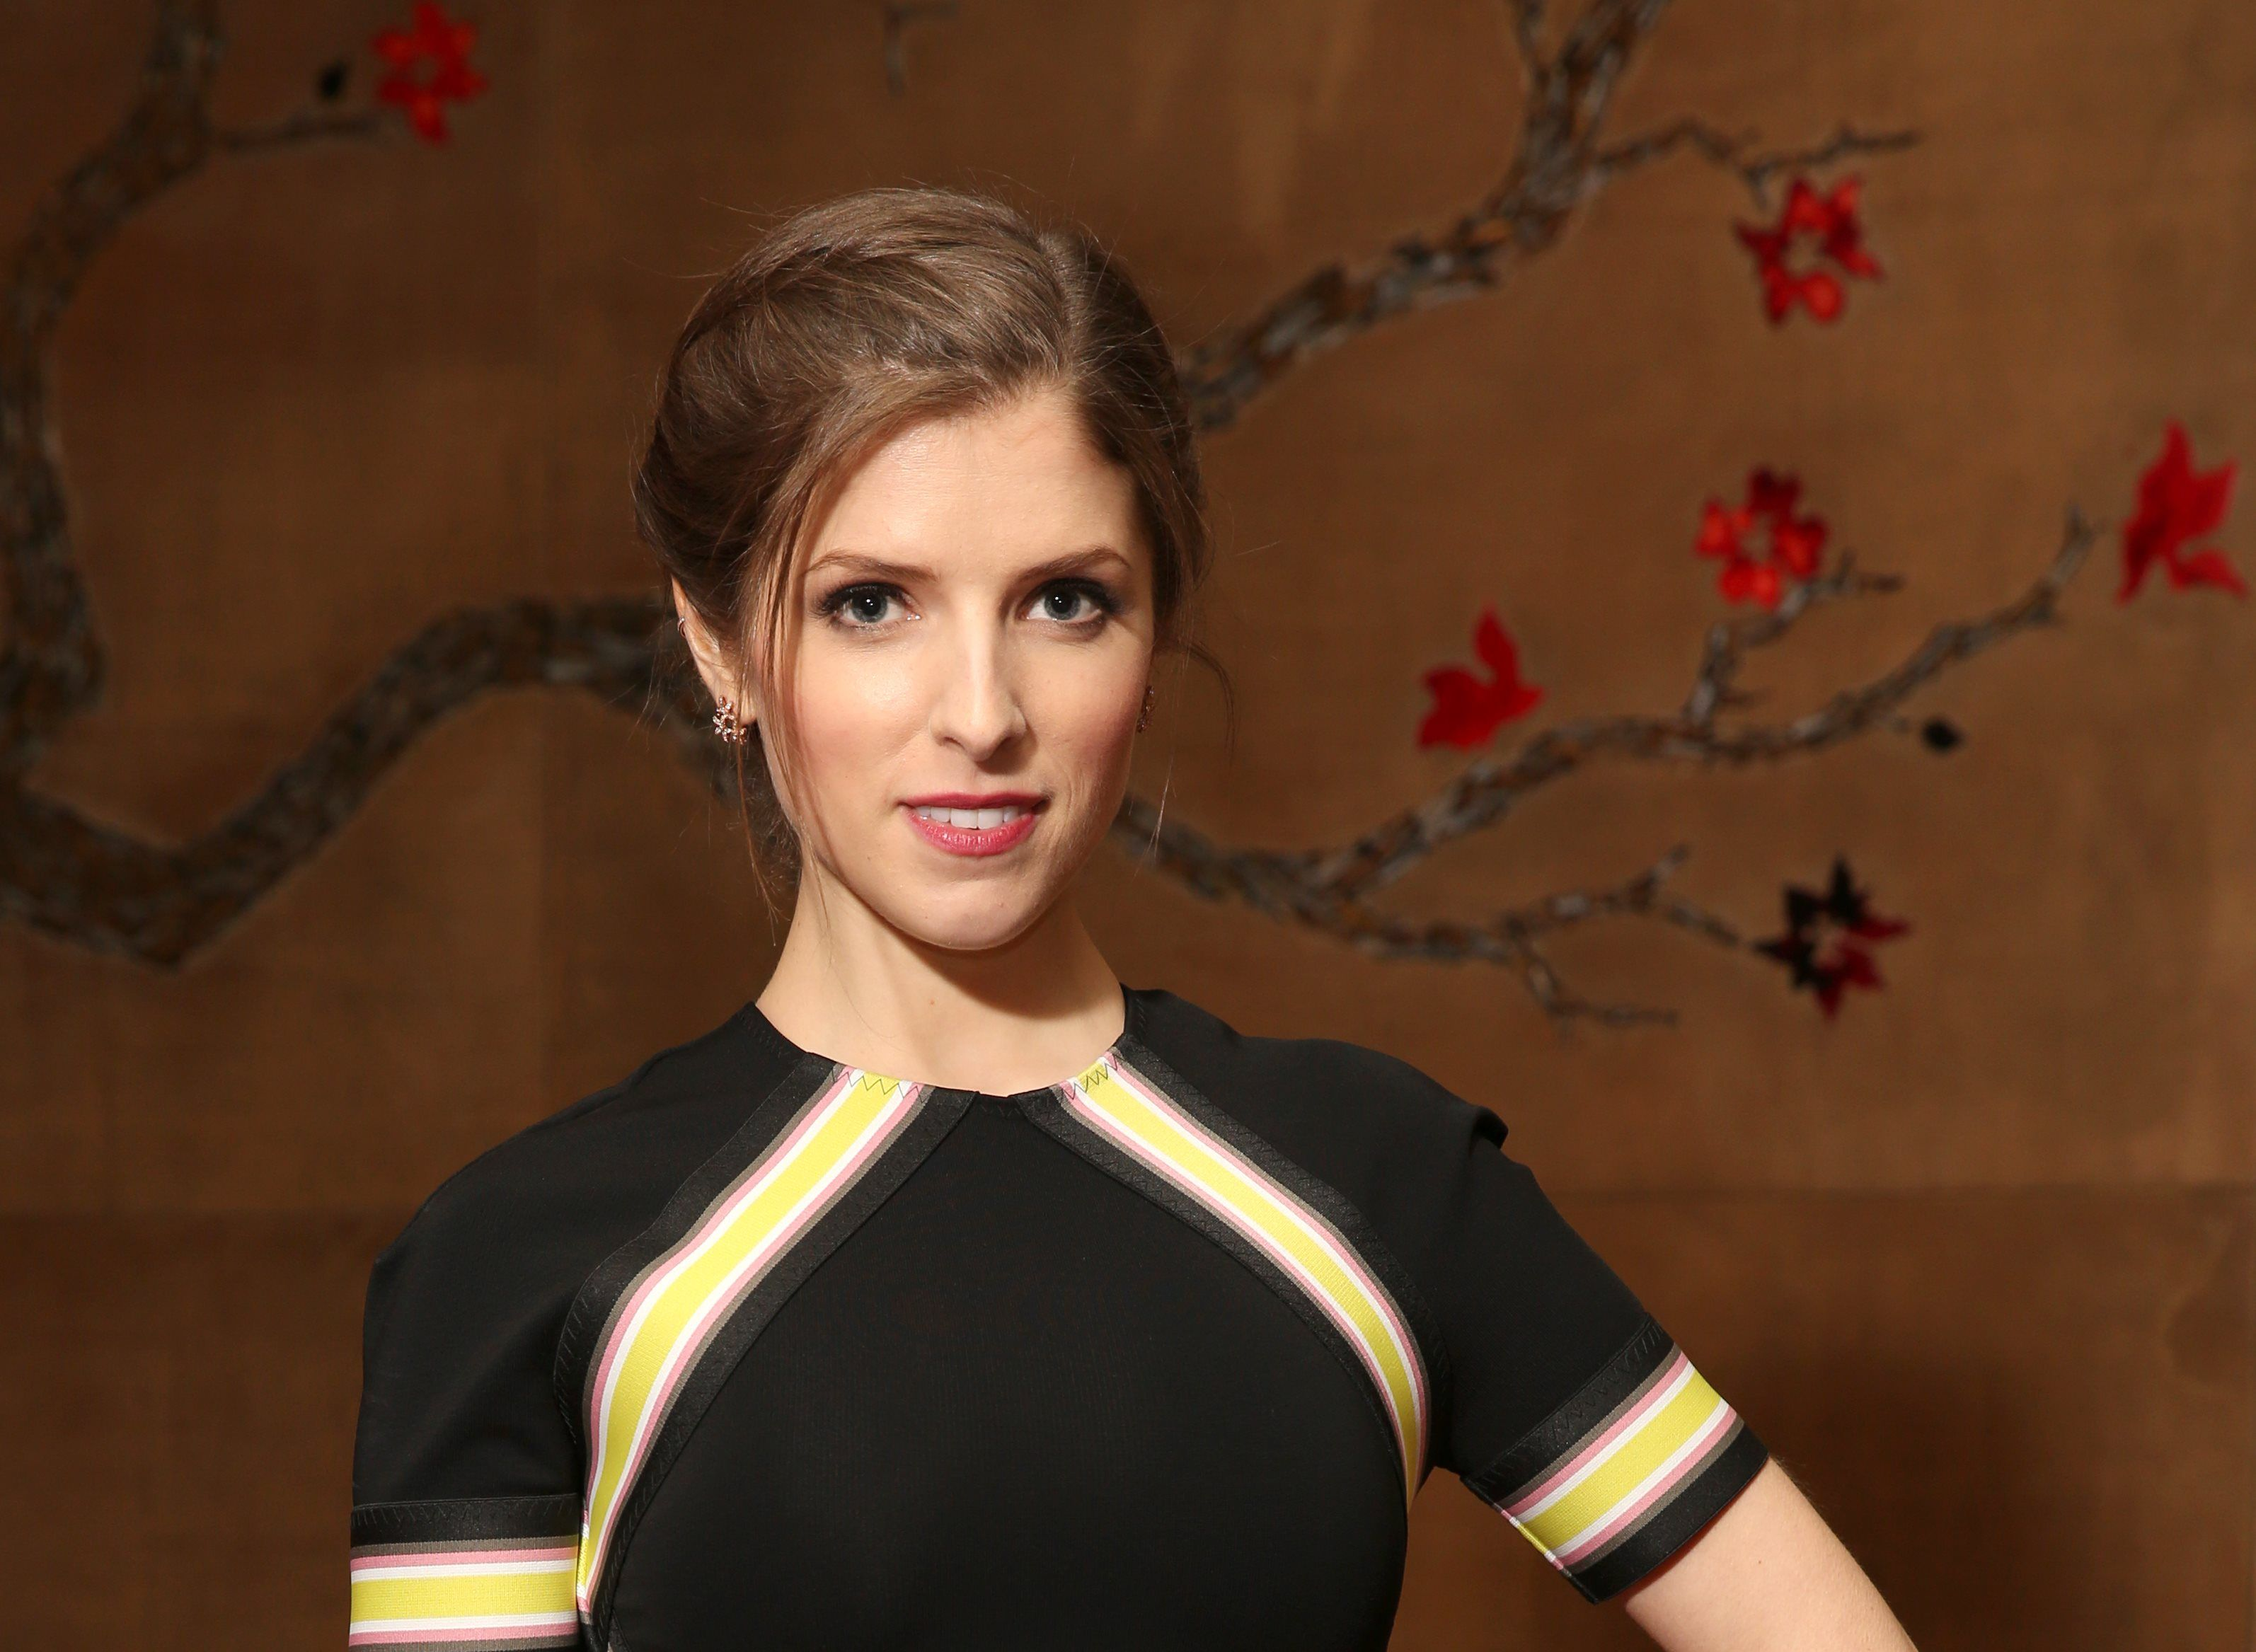 Anna Kendrick - Q & A Session for Pitch Perfect 2 5/11/15